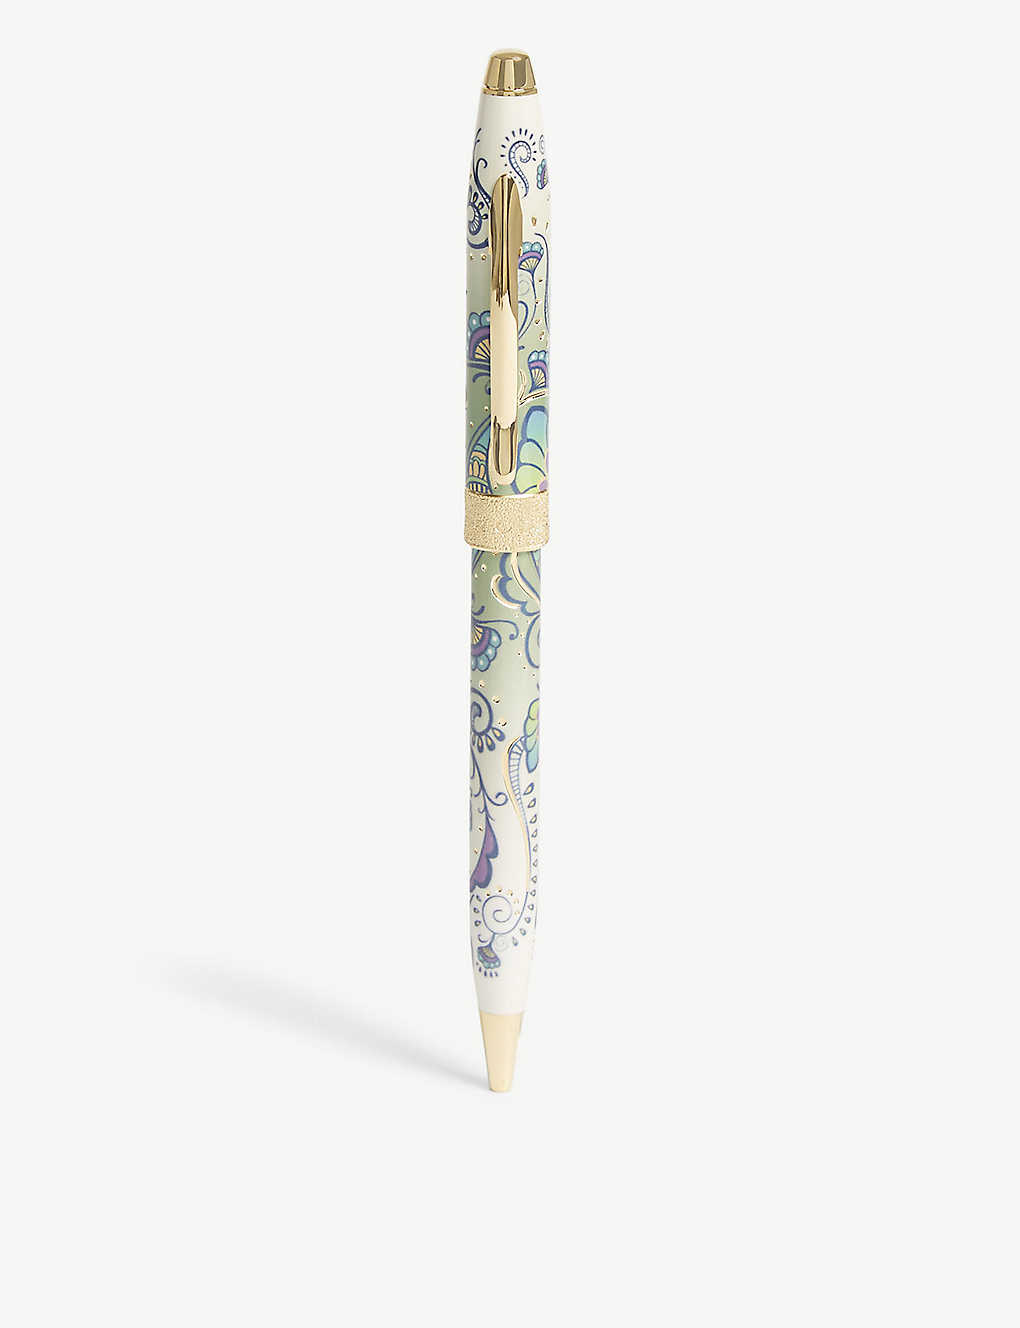 CROSS: Botanica Green Daylily ballpoint pen